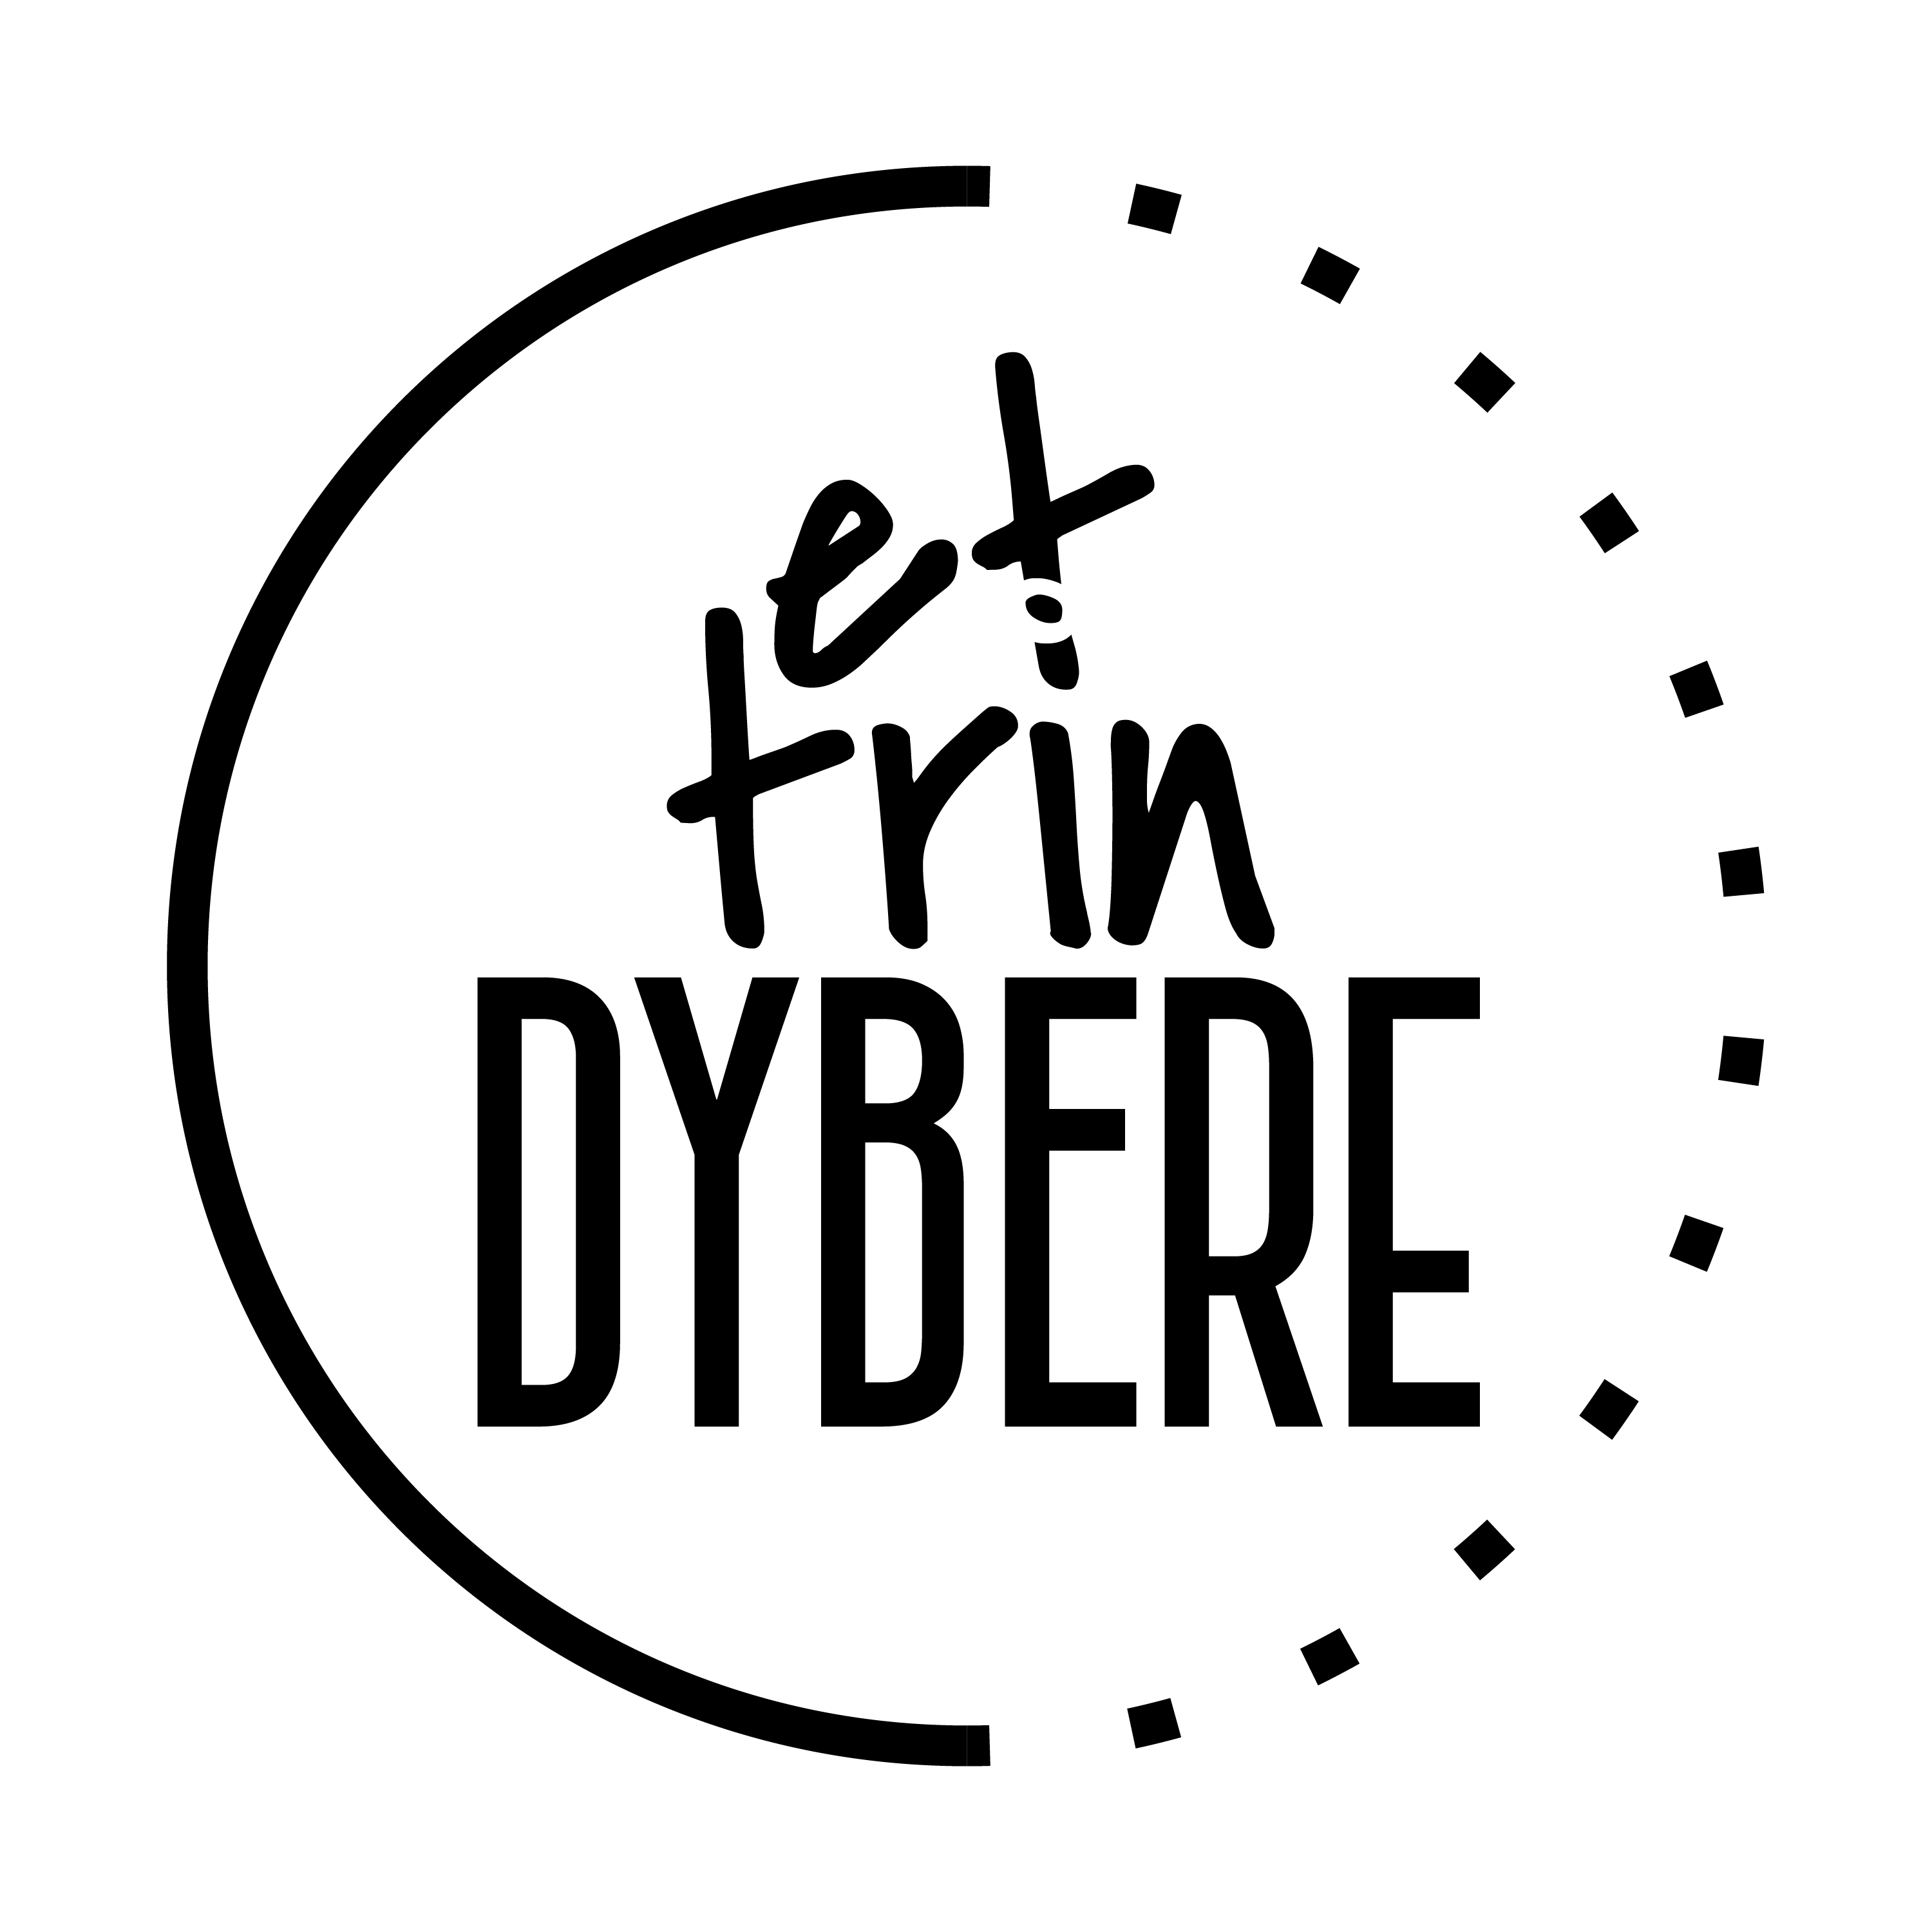 Et Trin Dybere